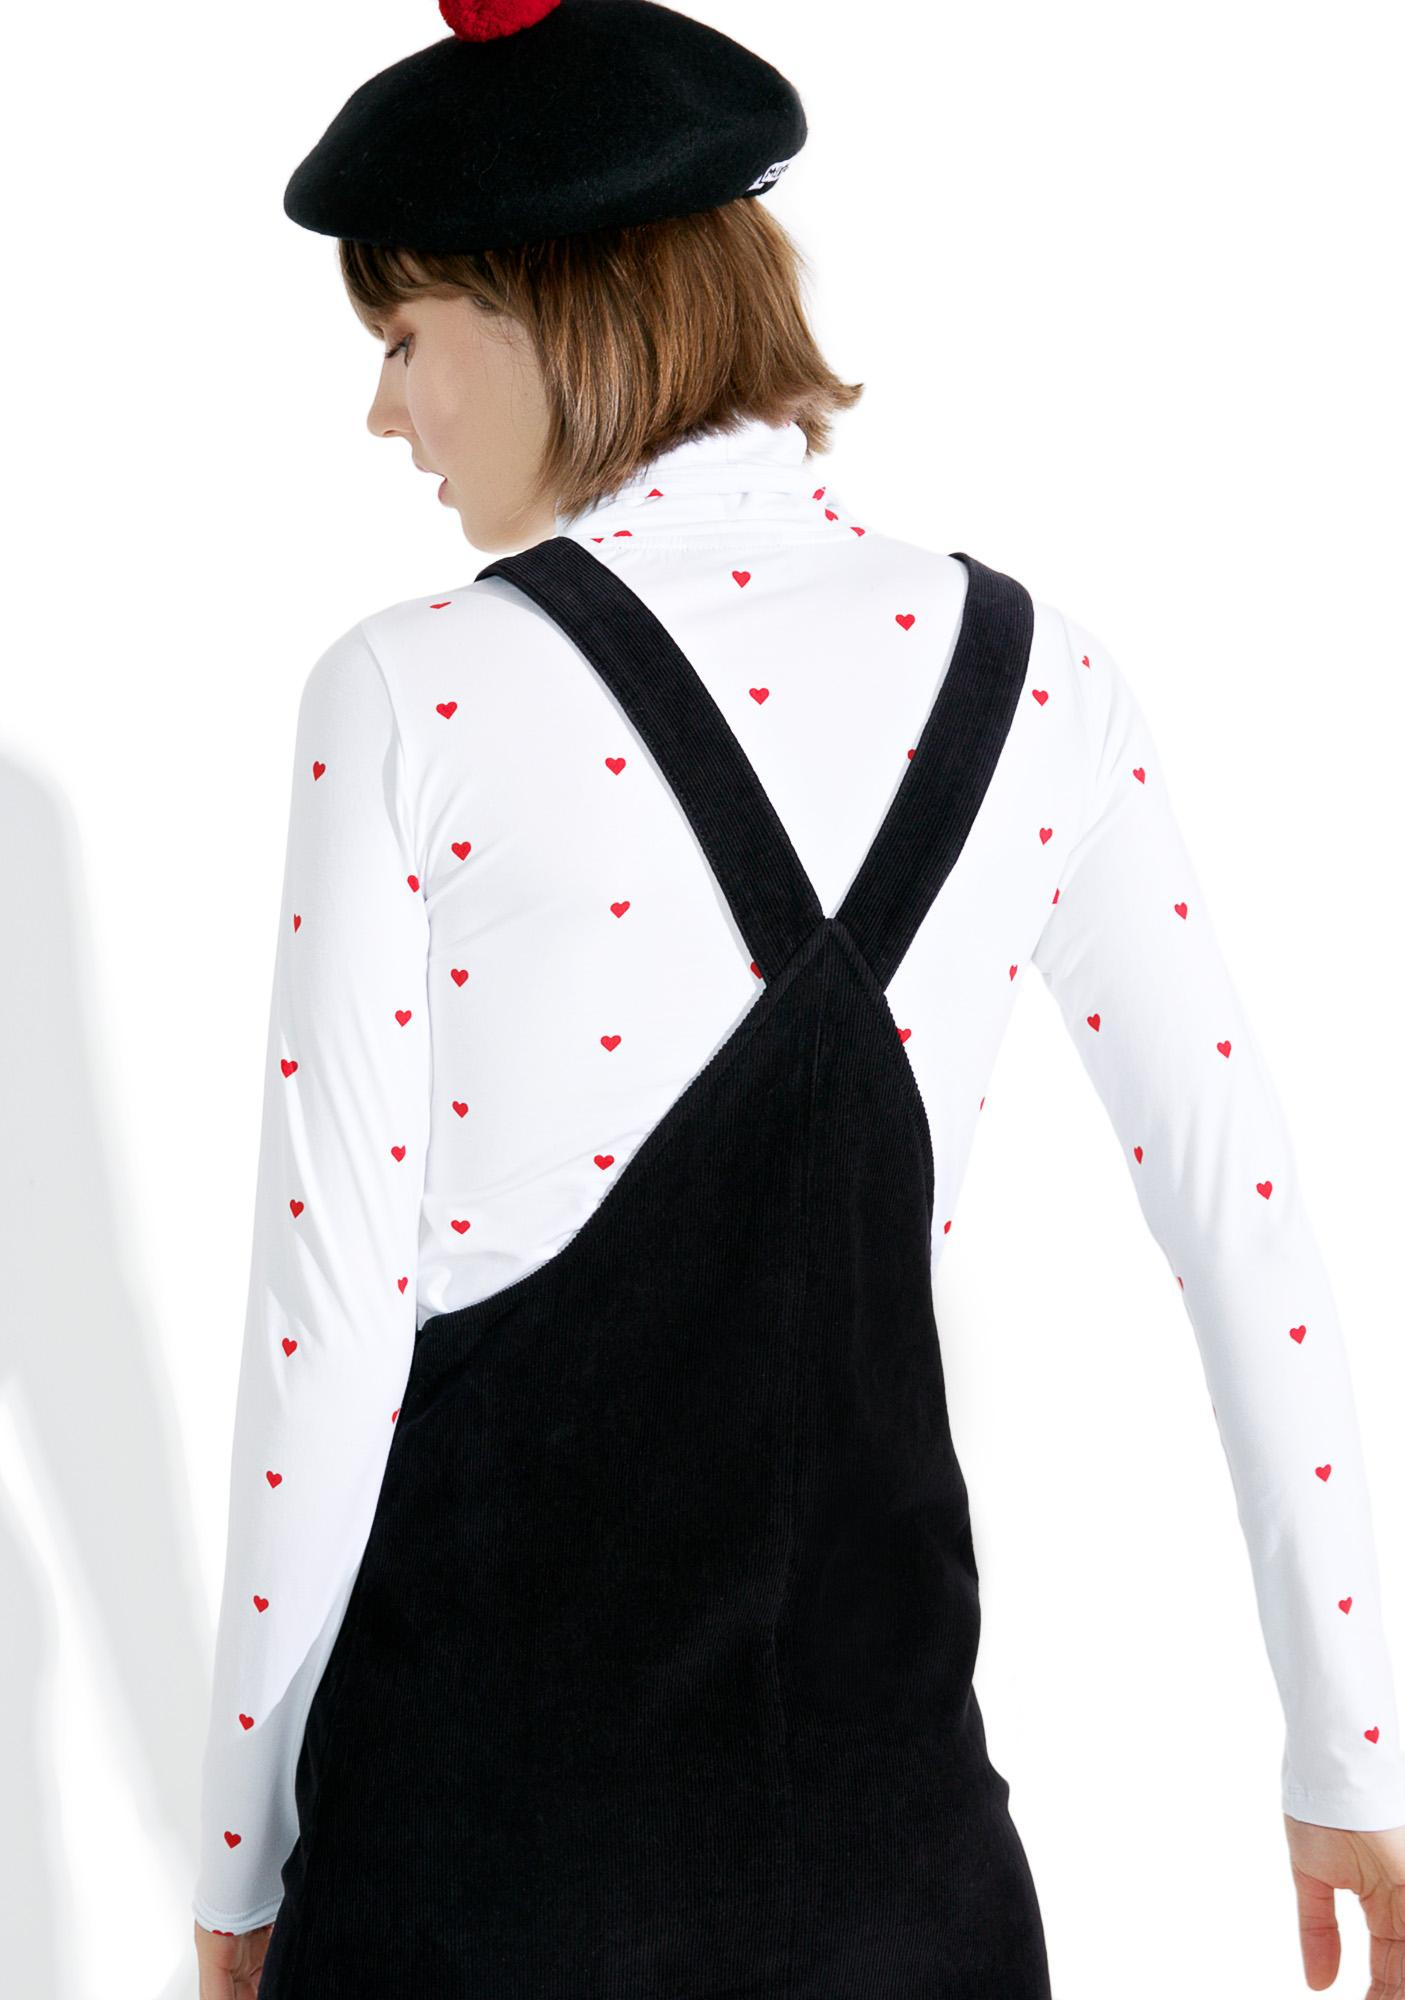 Lazy Oaf Bow Tie Eyeball Pinafore